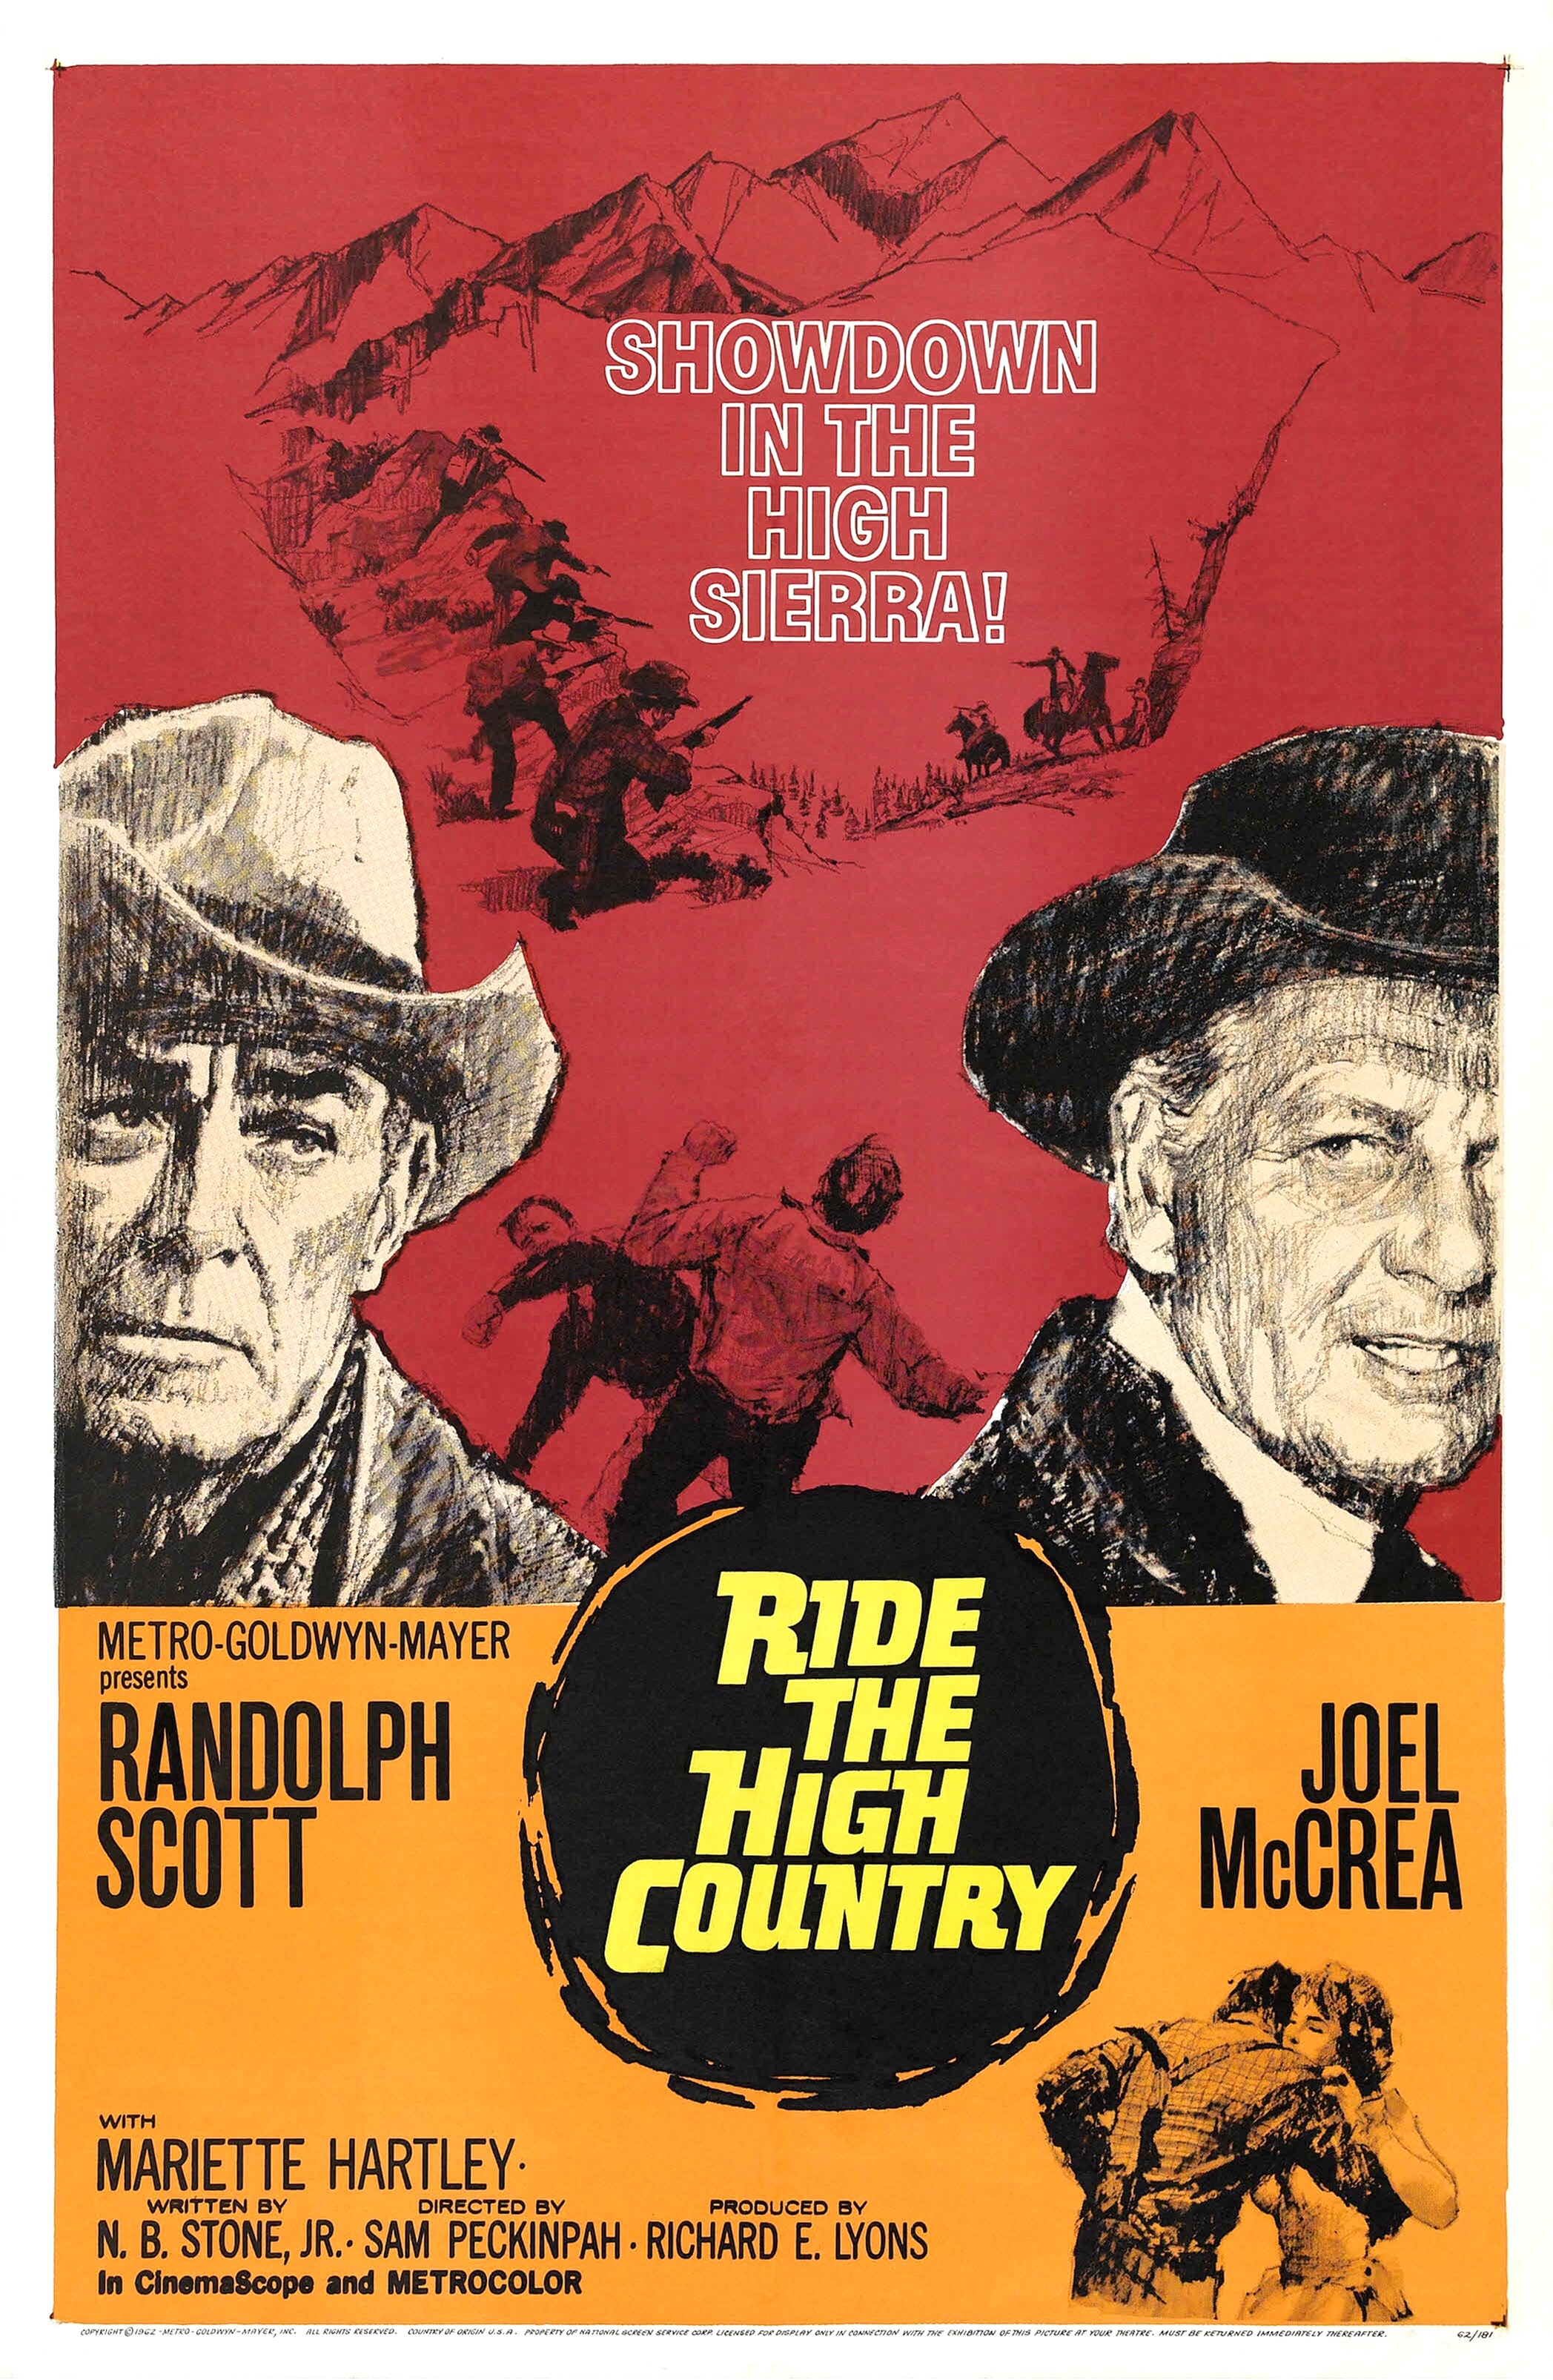 The Good Ride >> Ride the High Country - Wikiquote